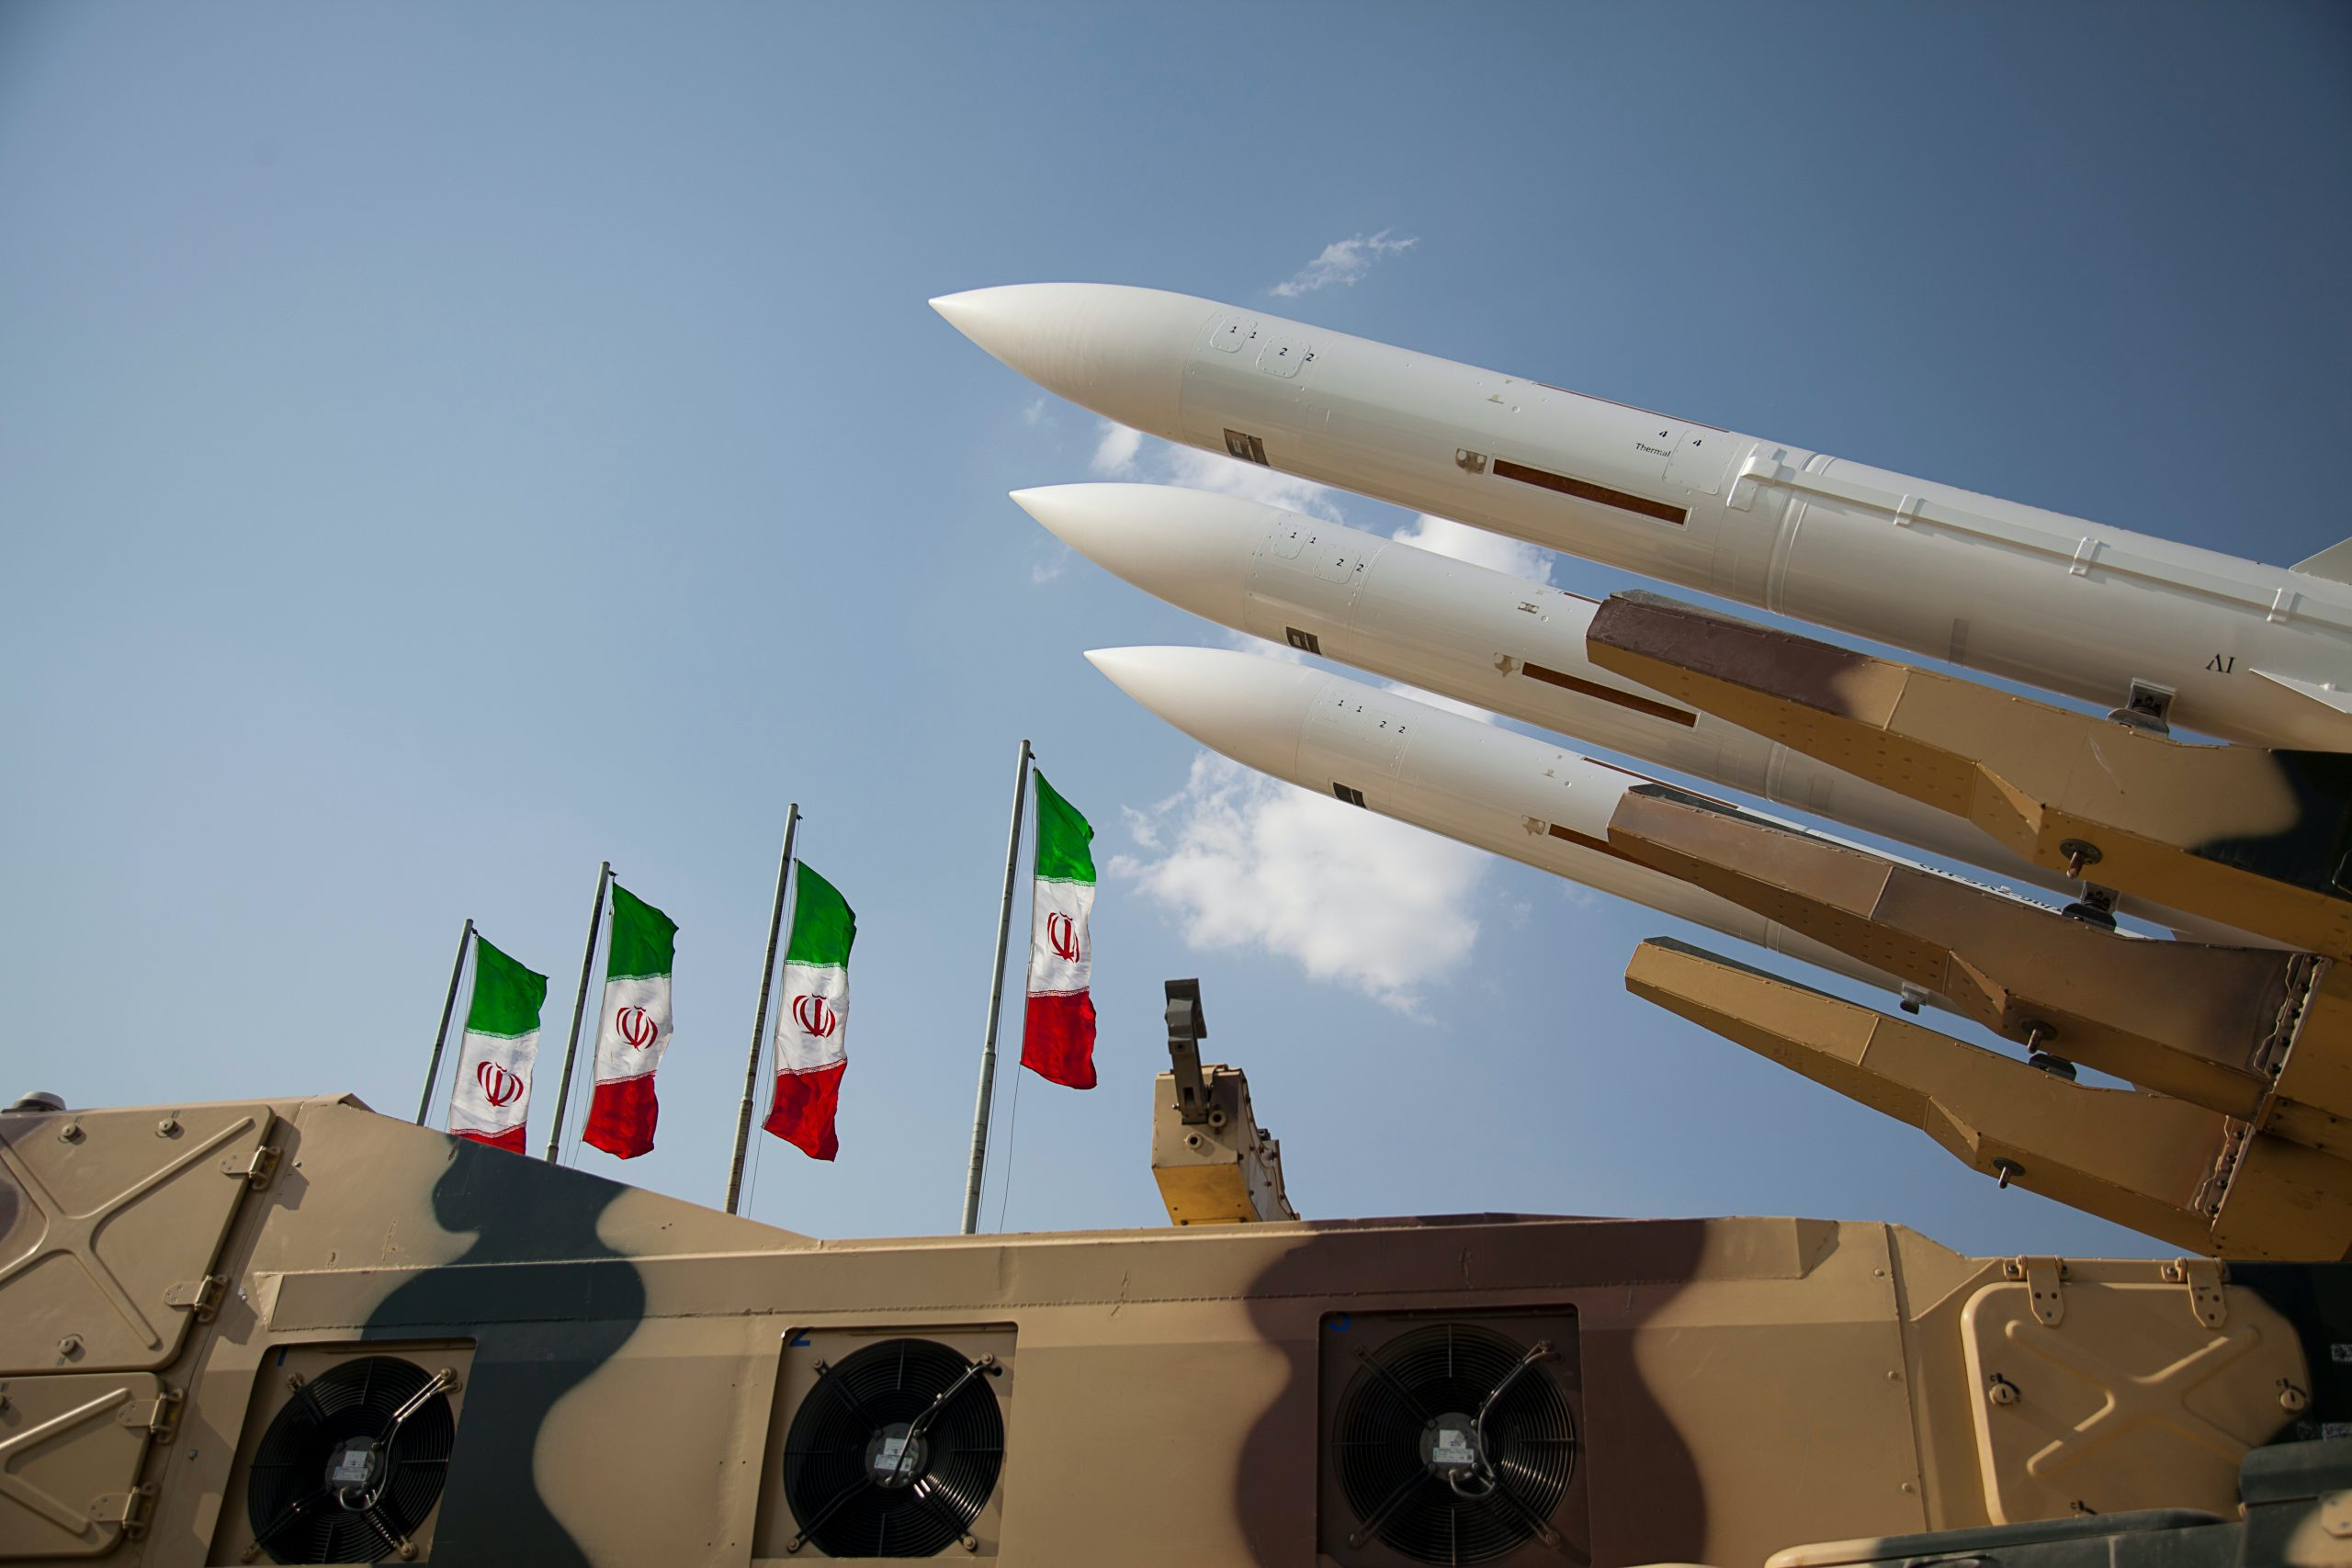 An array of missiles with Iranian flags in the background.